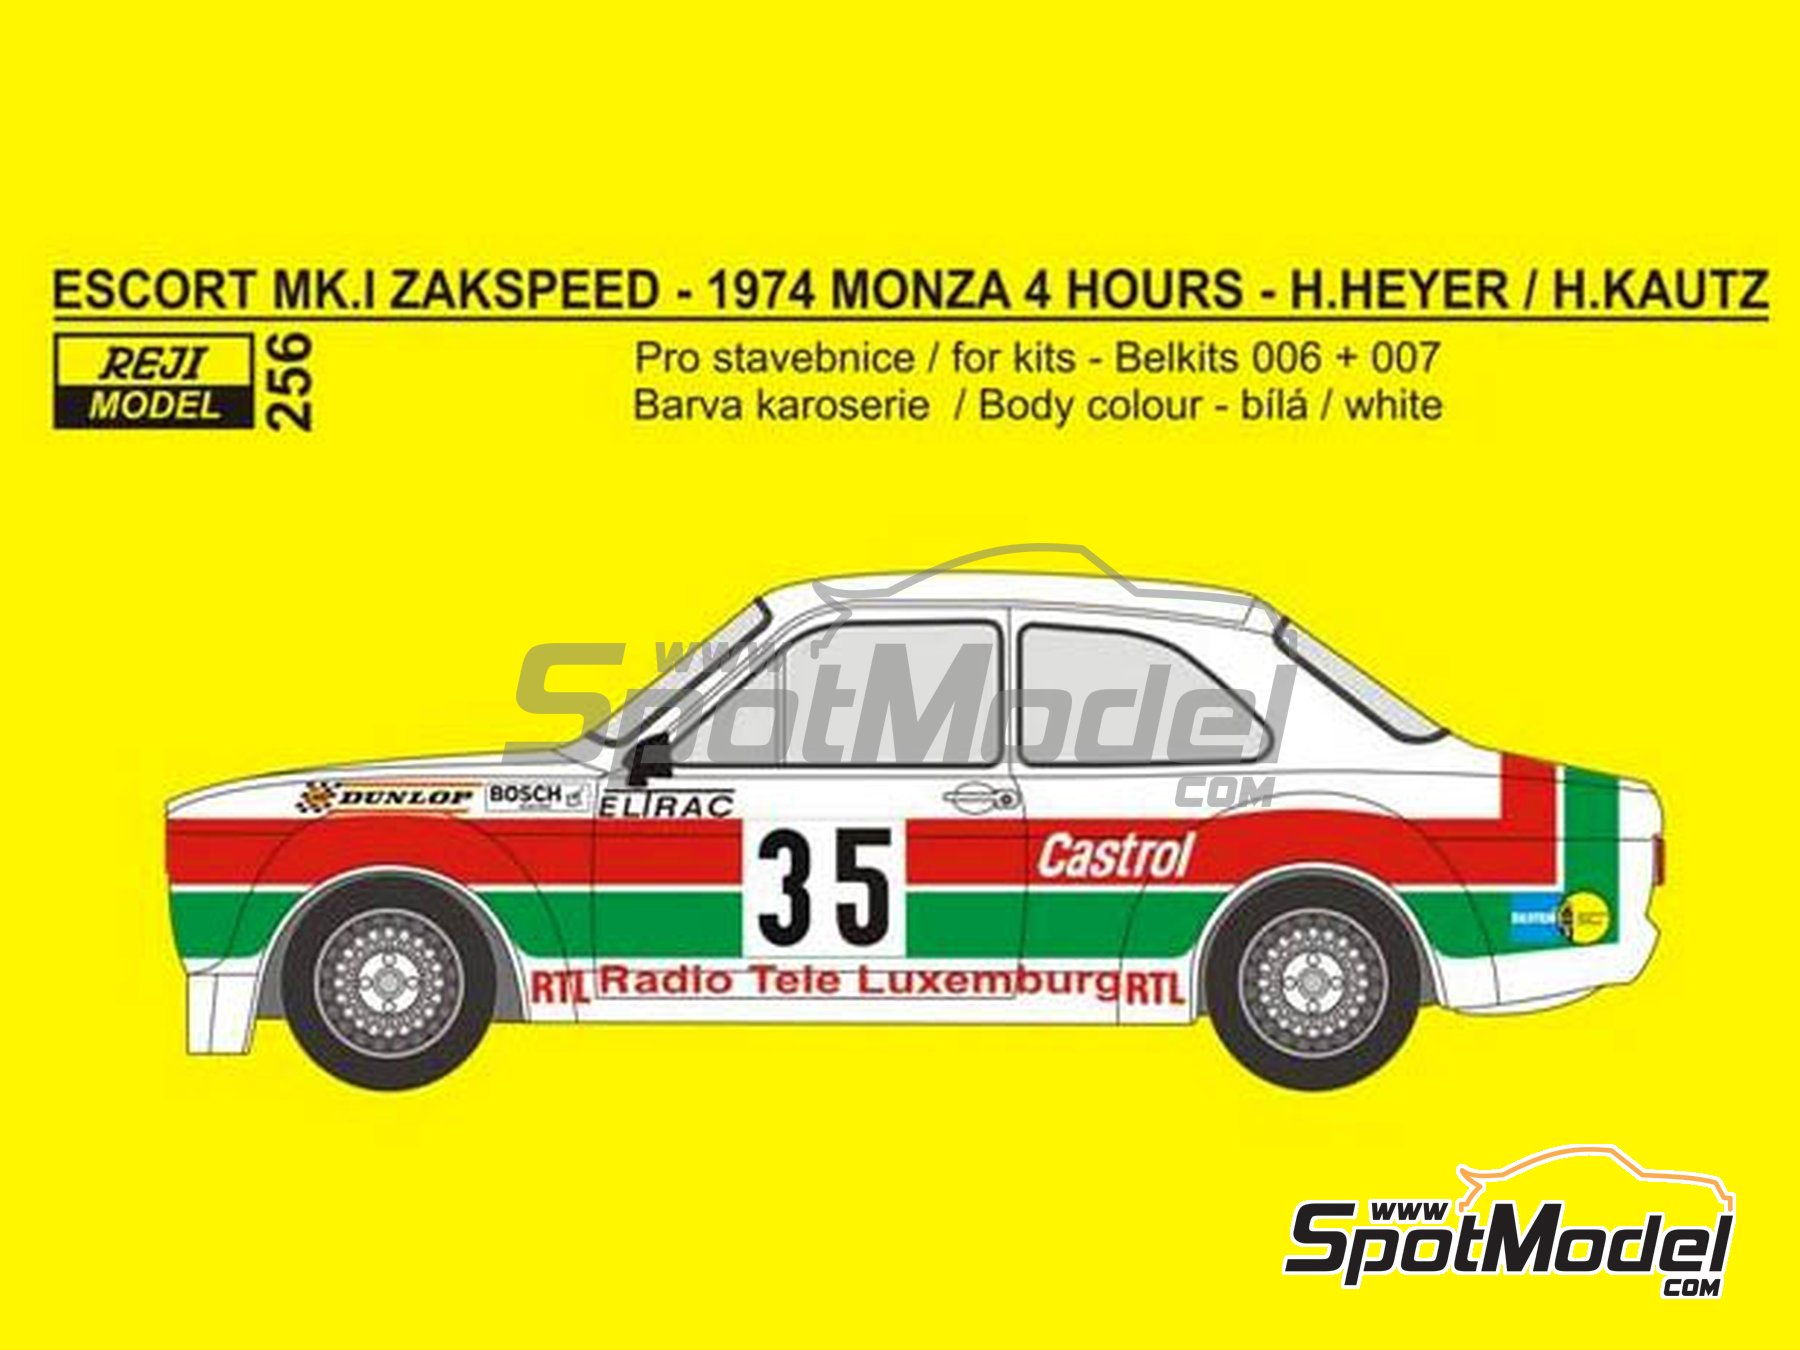 Image 1: Ford Escort Mk. I Zakspeed - 4 Hours Monza 1974 | Marking in 1/24 scale manufactured by Reji Model (ref. REJI-256)